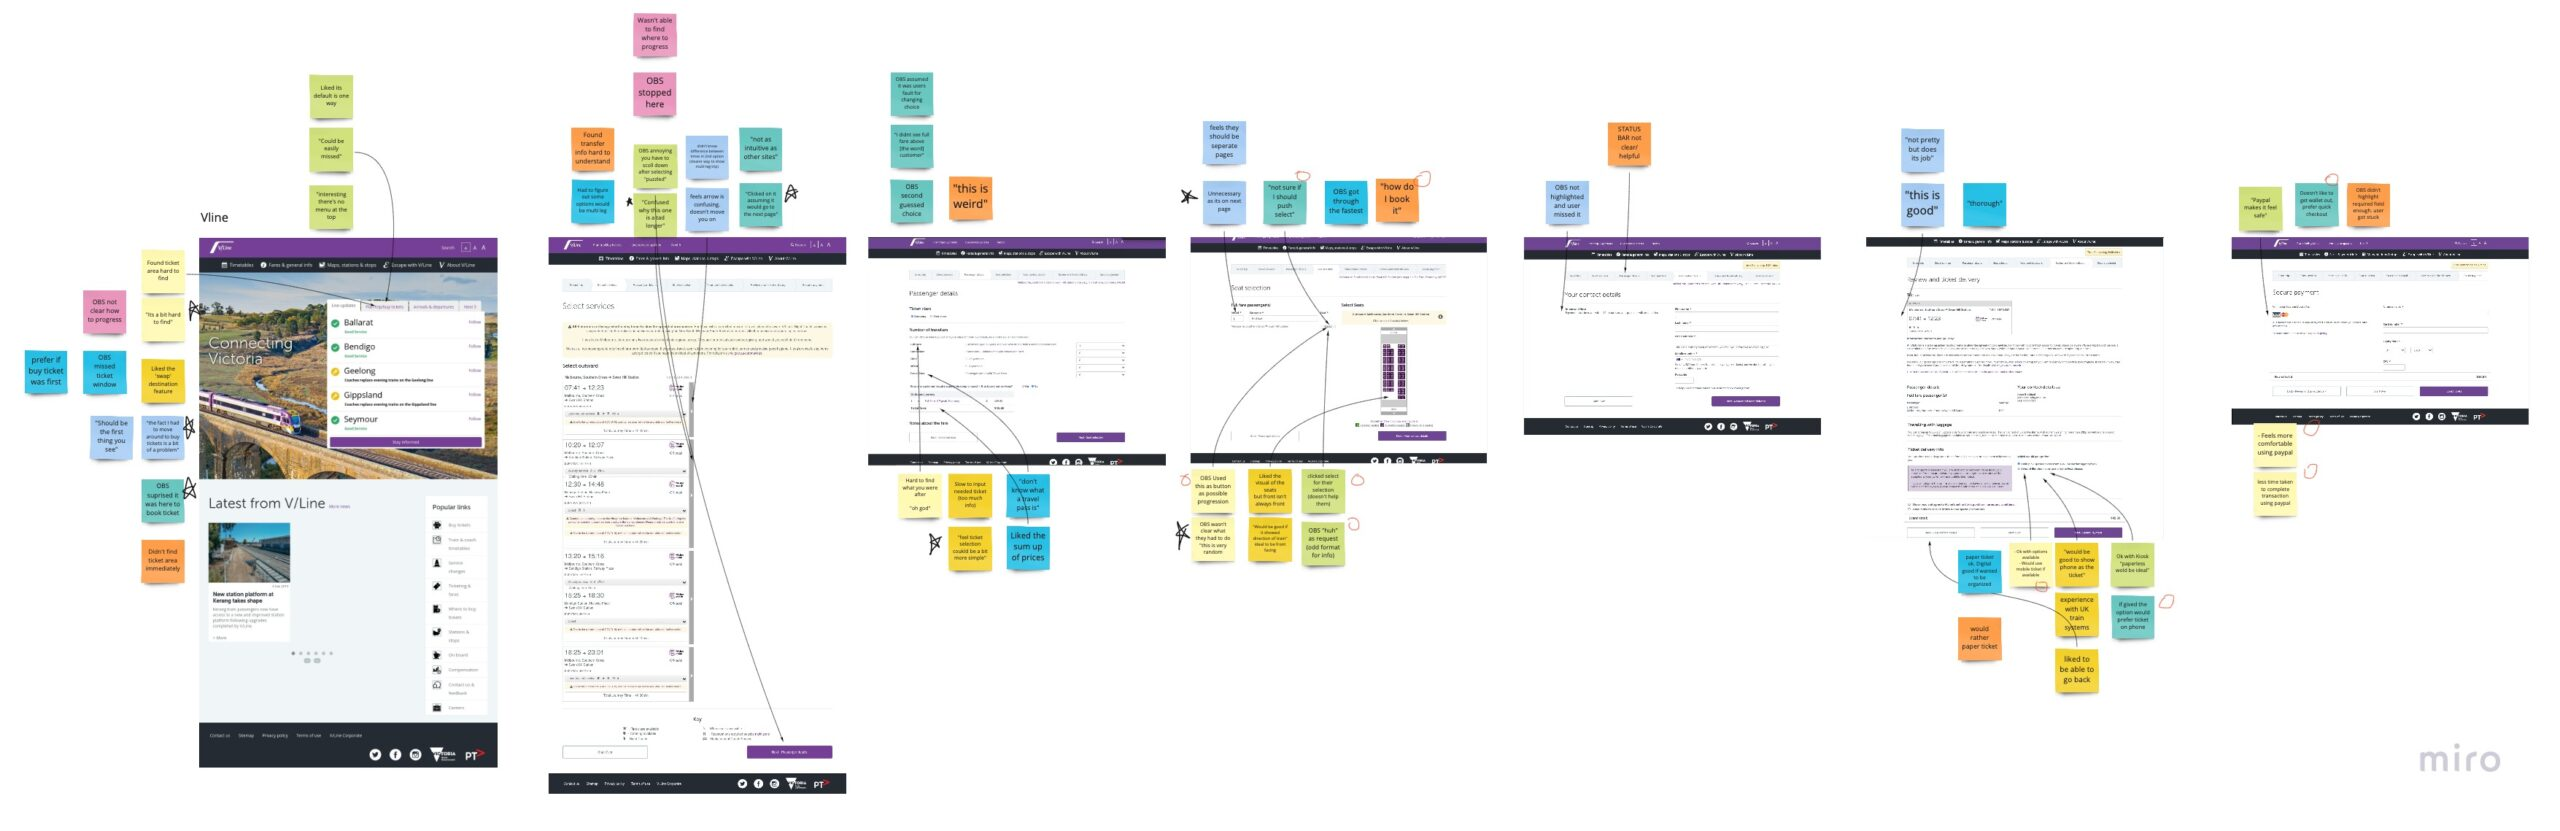 UX_design_Vline_Affinity_Map_observation_task